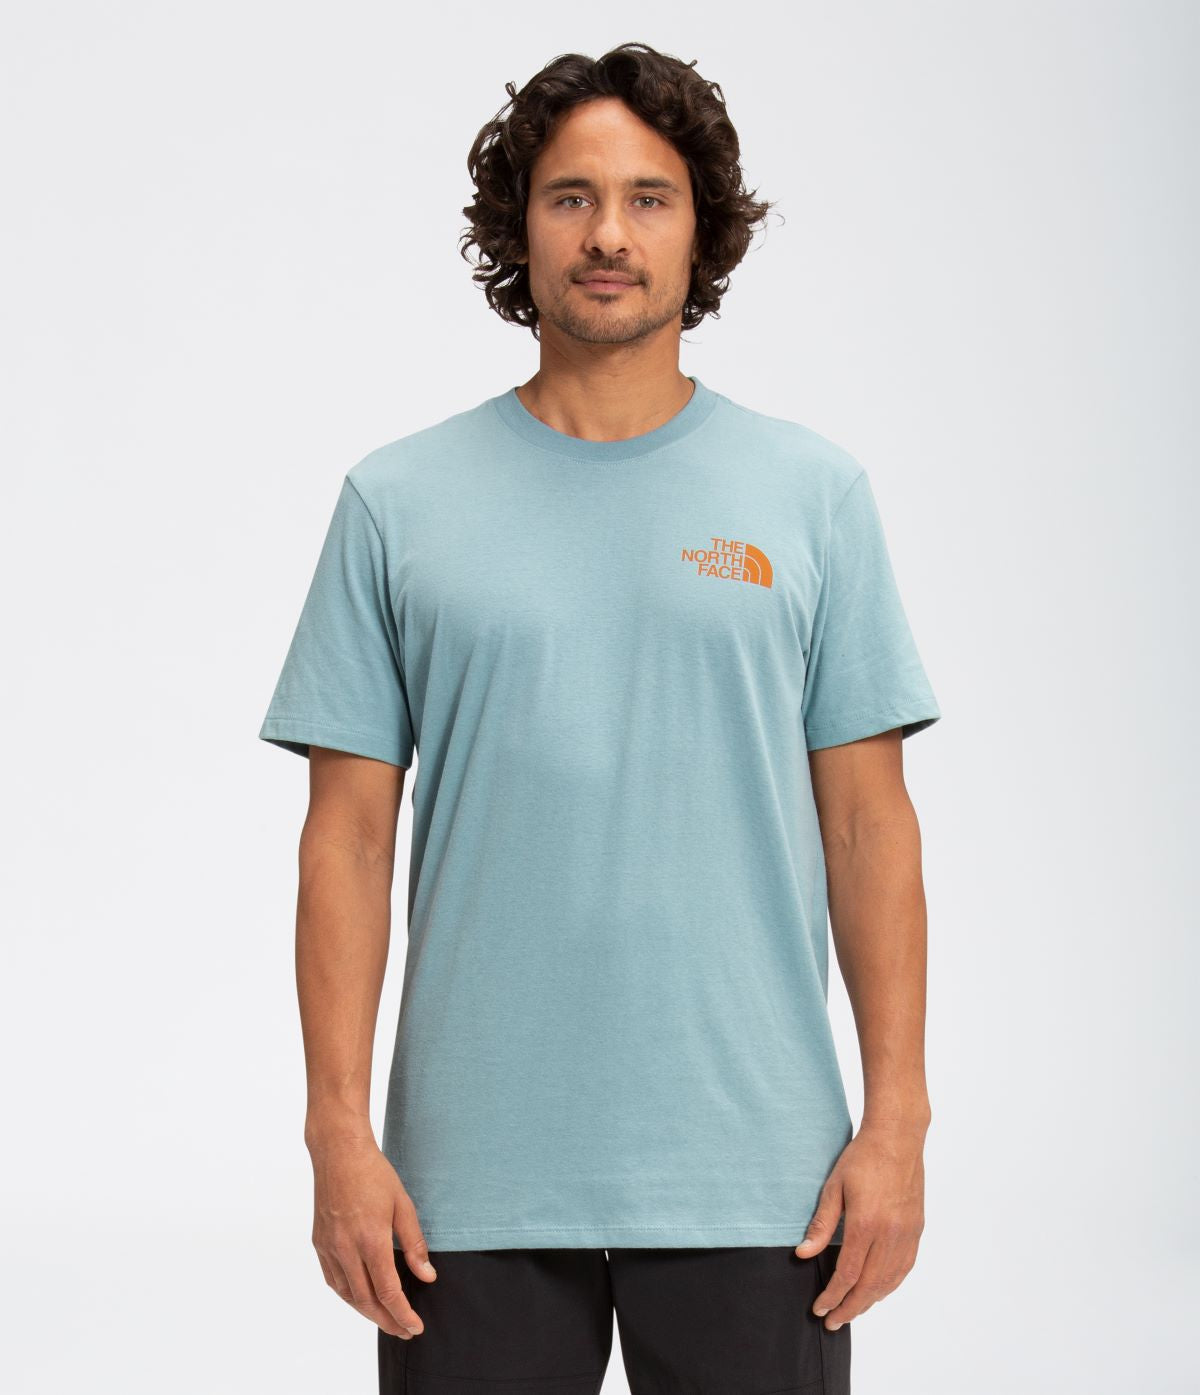 'The North Face' Men's Simple Dome T-Shirt - Tourmaline Blue